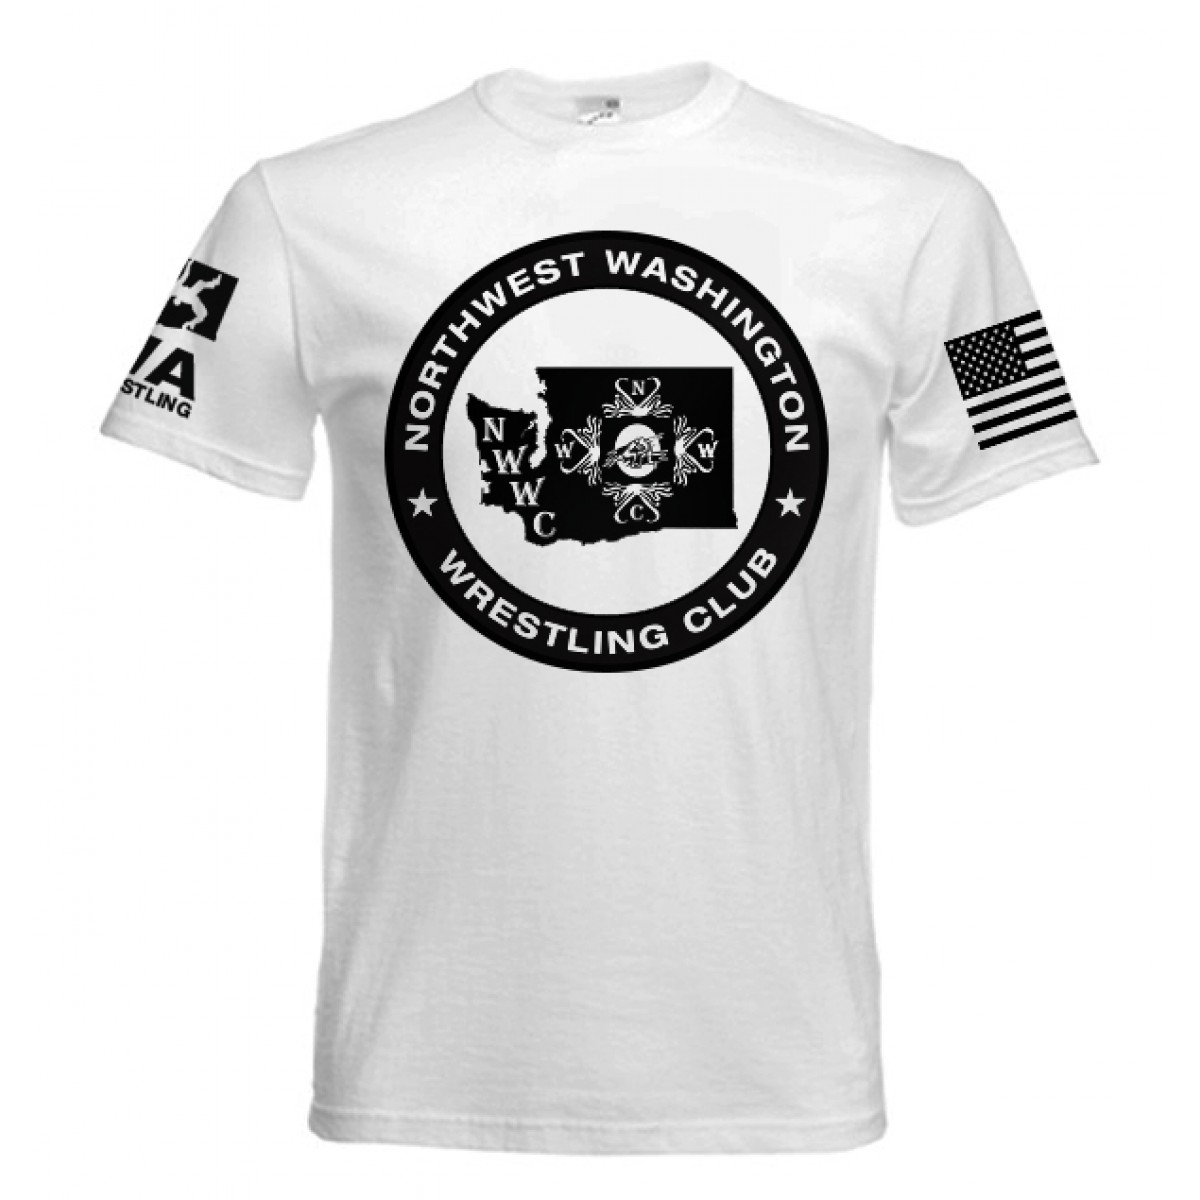 NWWC White T-shirt Black Logo-White-3XL